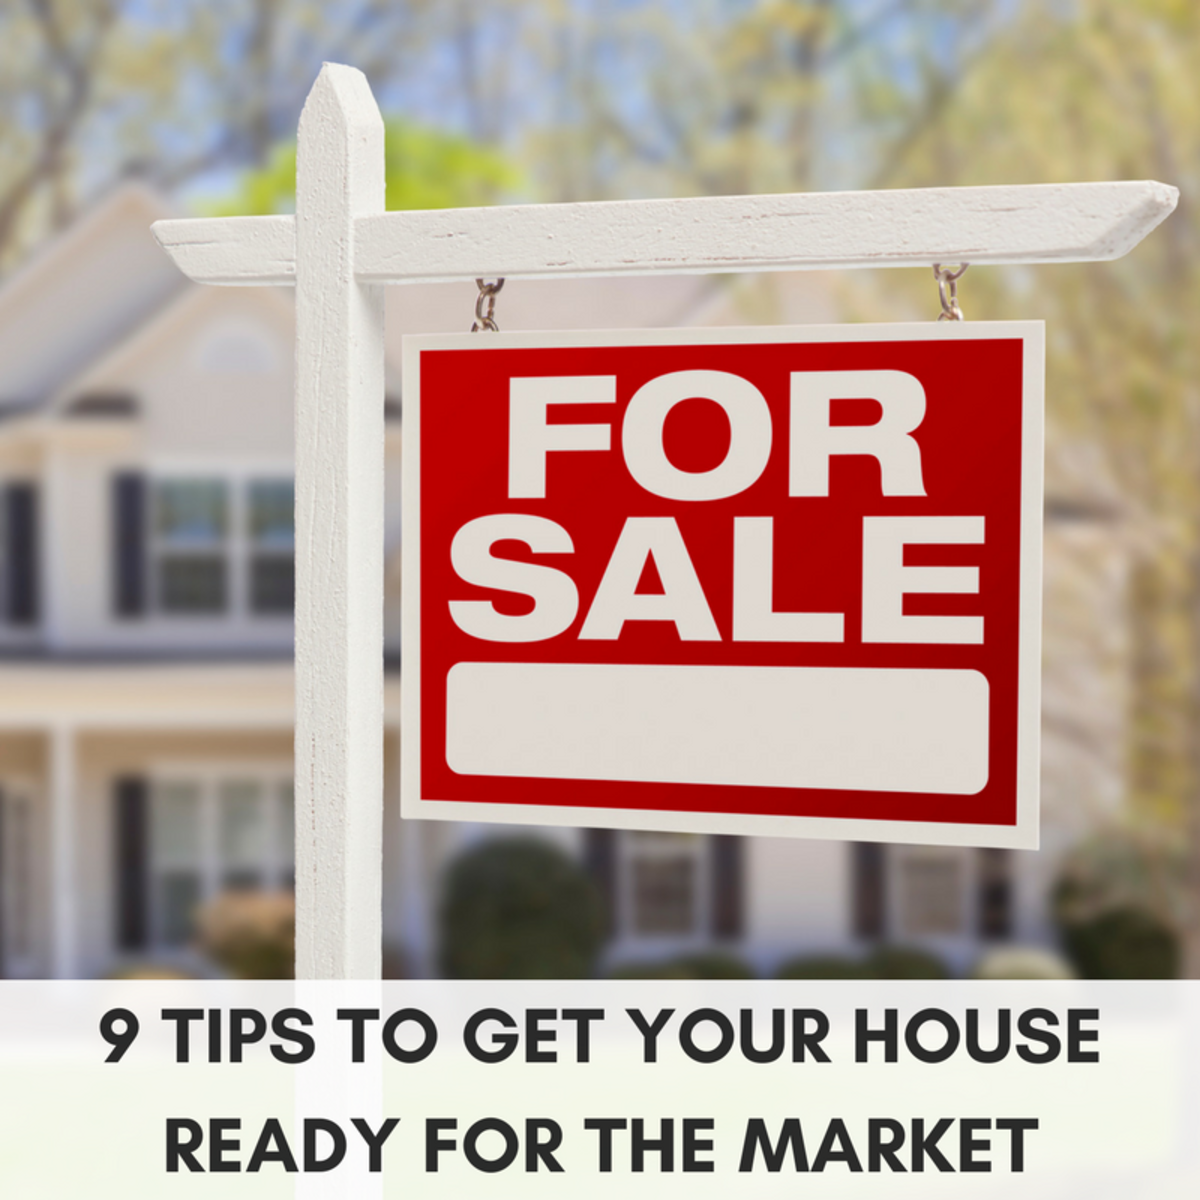 9 TIPS TO GET YOUR HOUSE READY FOR THE MARKET